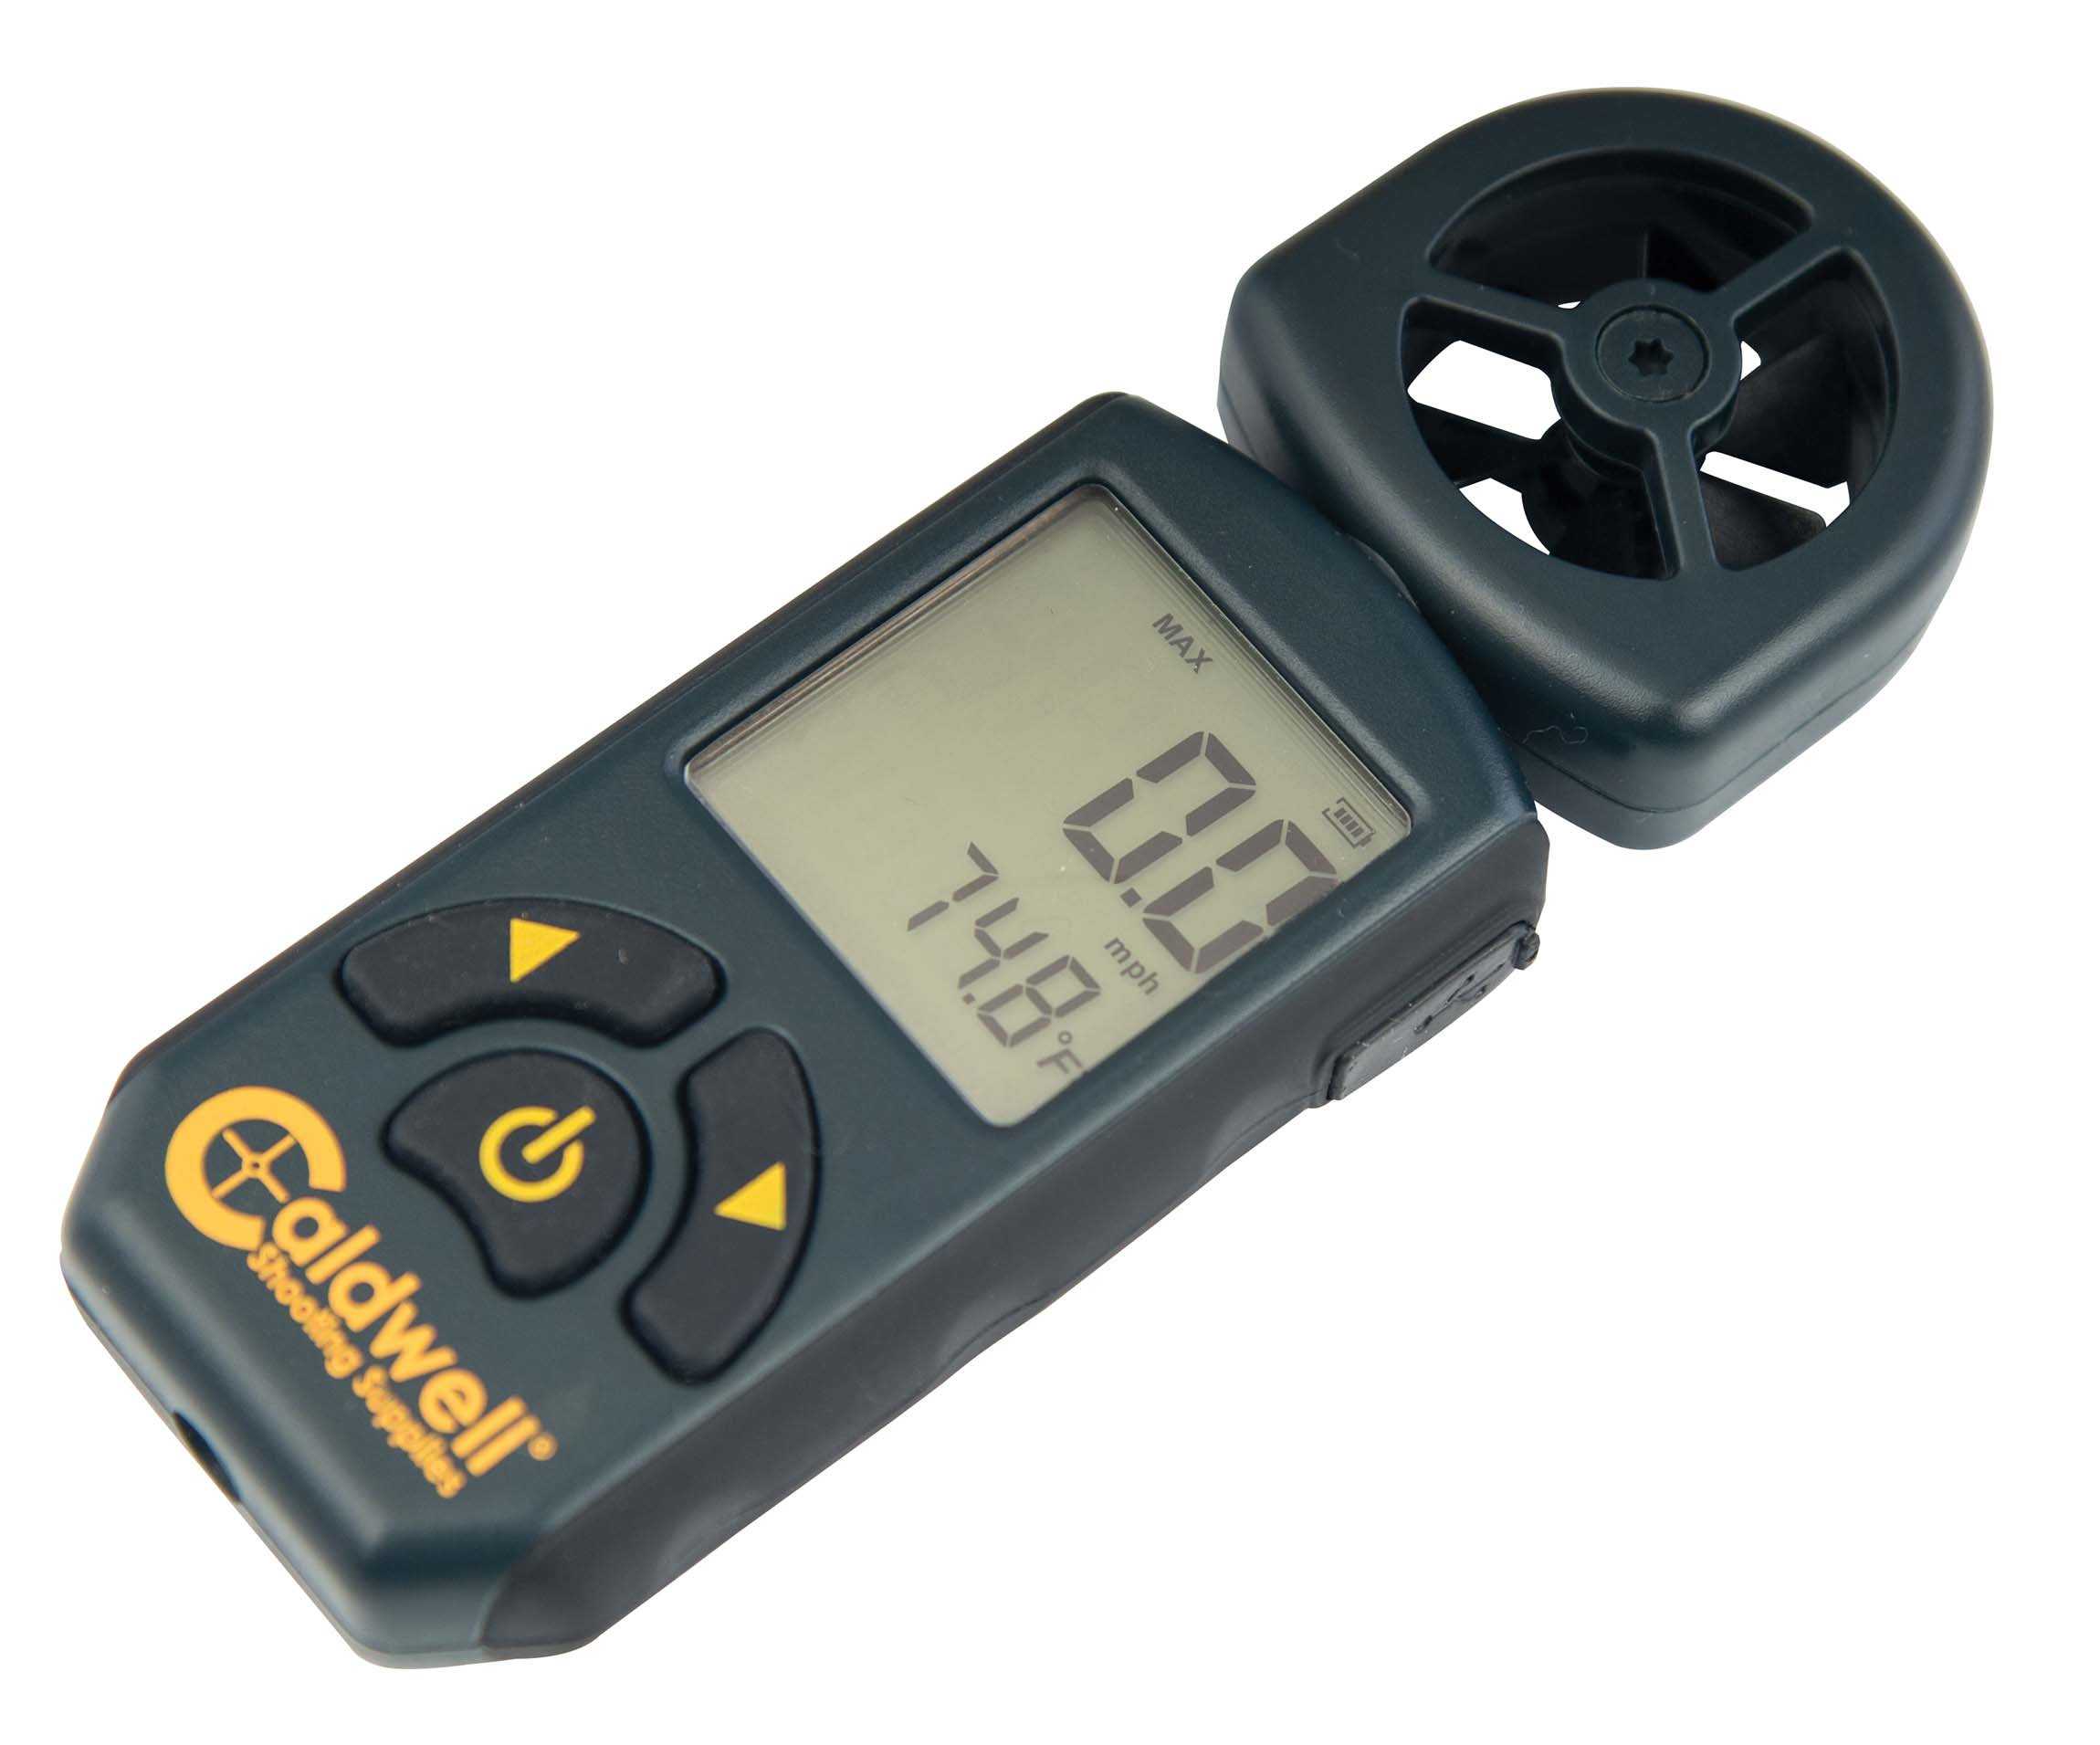 Caldwell Cross Wind Professional Wind Meter with Multiple Wind Readings, LCD Backlight and Lanyard for Long Range, Shooting and Hunting by Caldwell